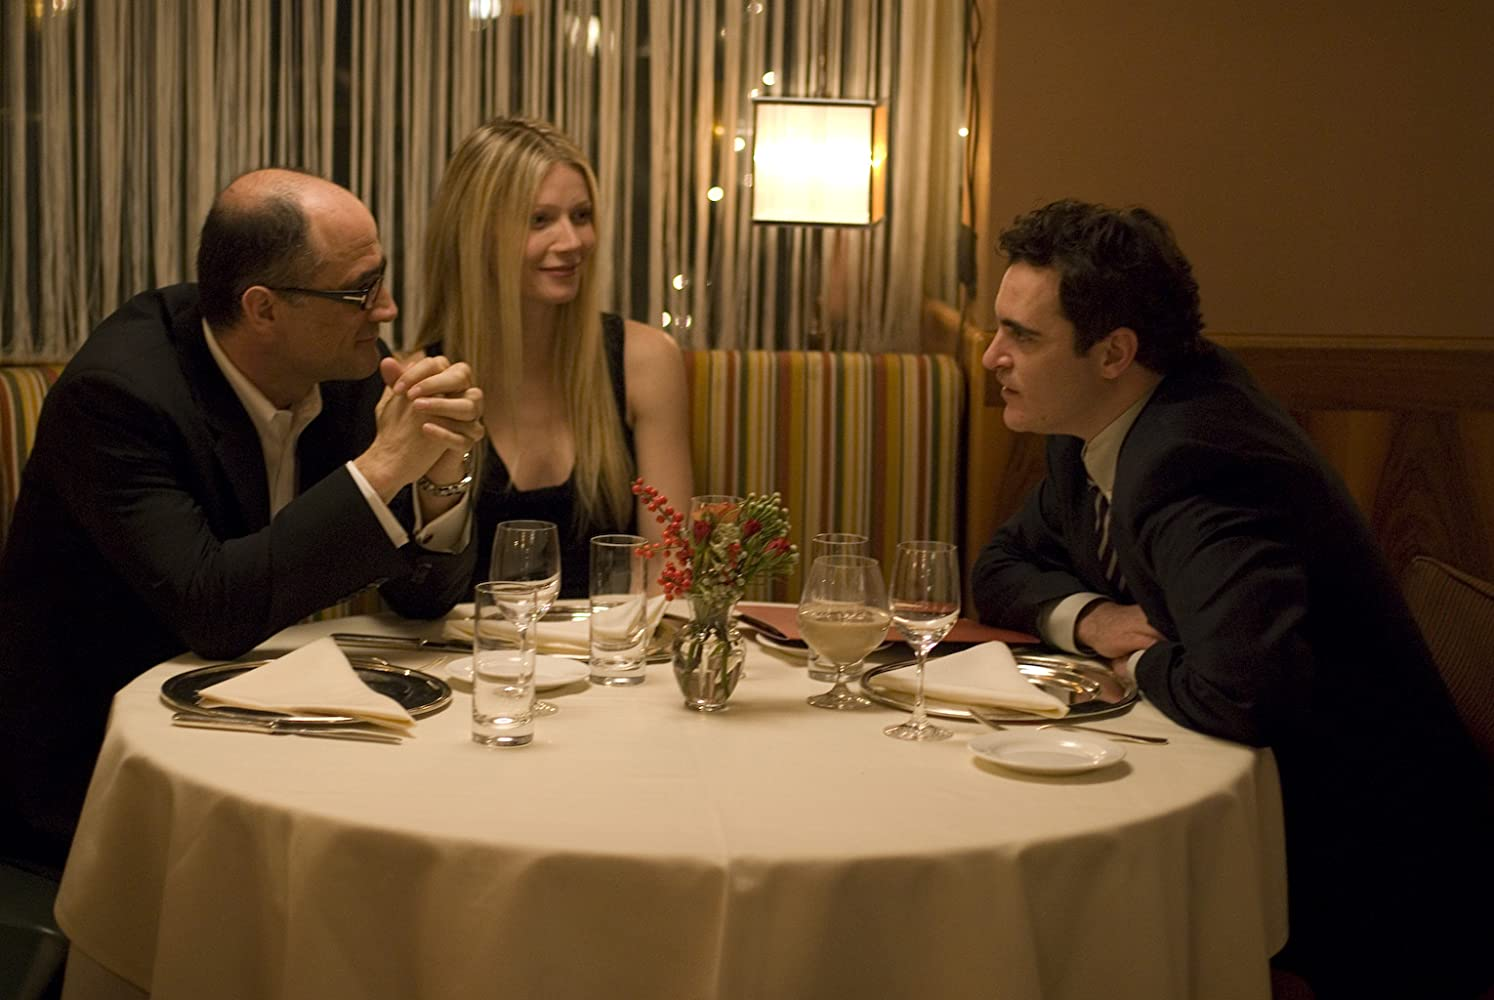 Gwyneth Paltrow and Joaquin Phoenix in Two Lovers (2008)